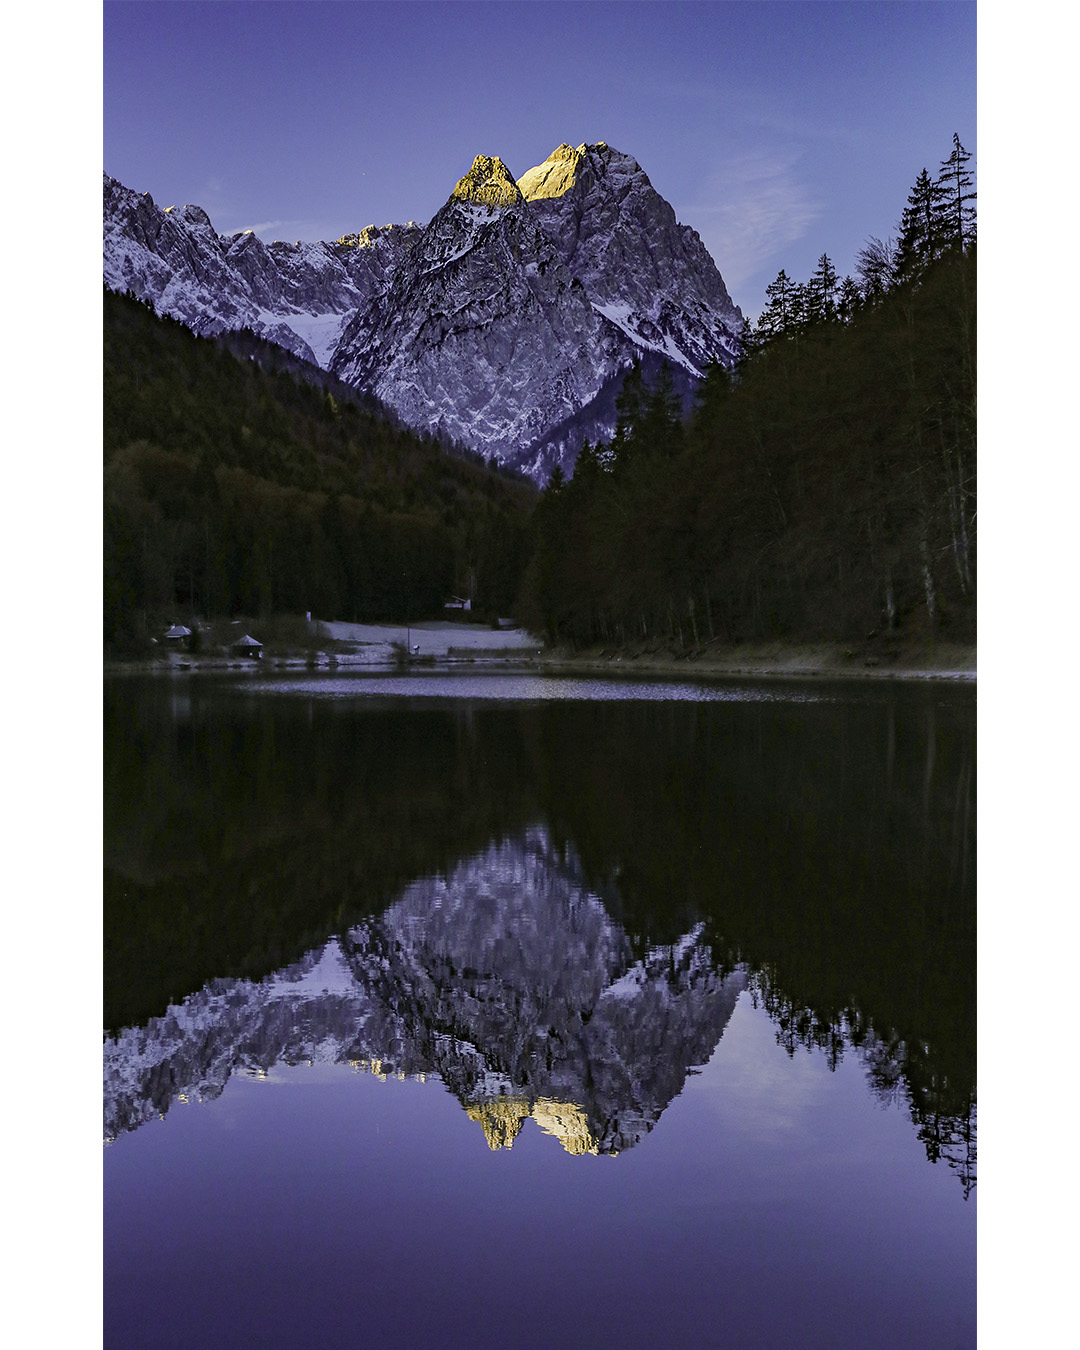 Riessersee, Germany